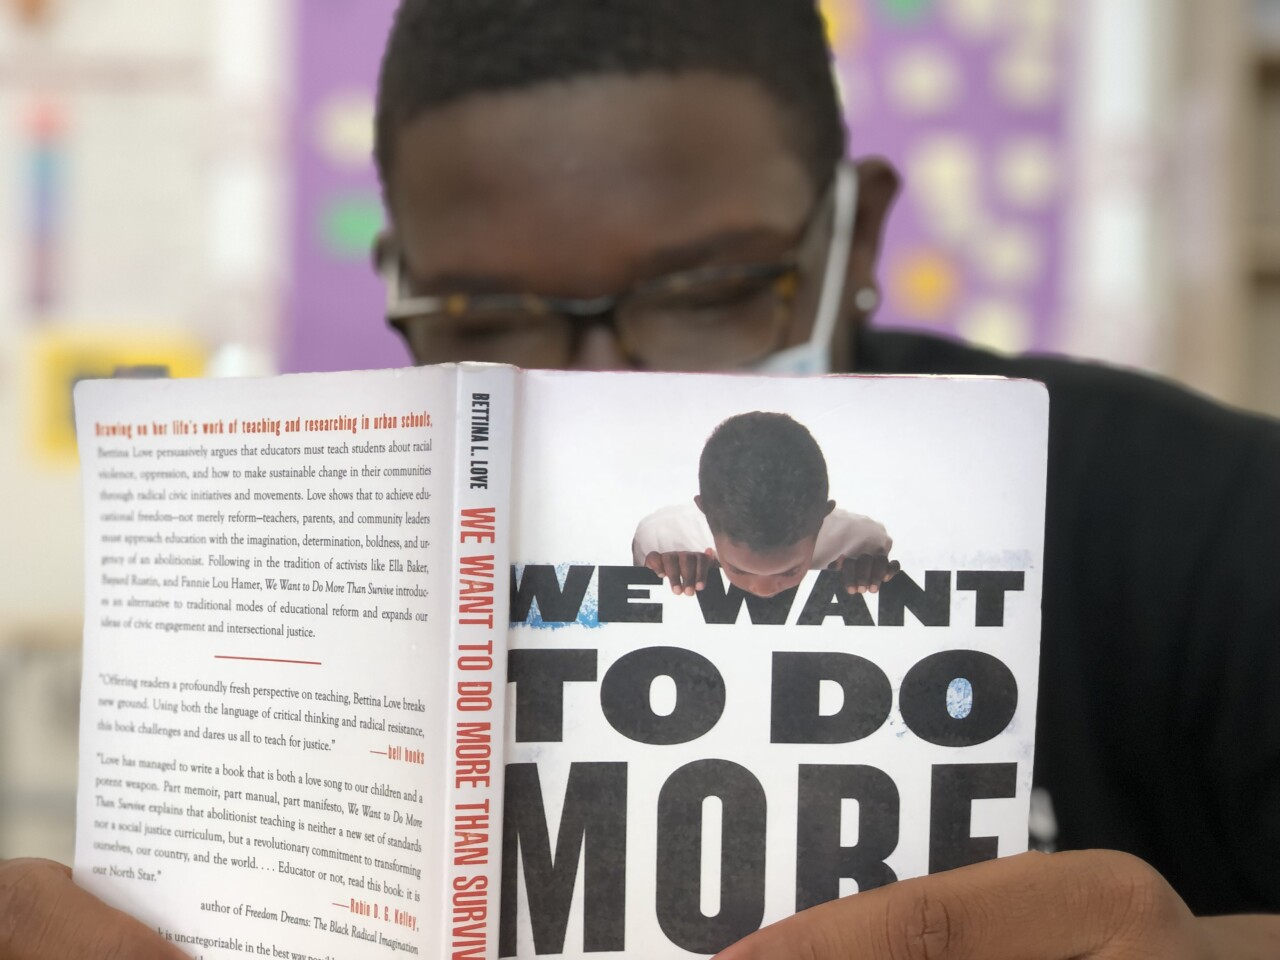 """An Aiken High School student reads in preparation for a discussion with Keith Lamar, a death row inmate at the Ohio State Penitentiary. The student is wearing glasses and a mask and is reading """"We Want to Do More Than Survive"""" by Bettina Love."""